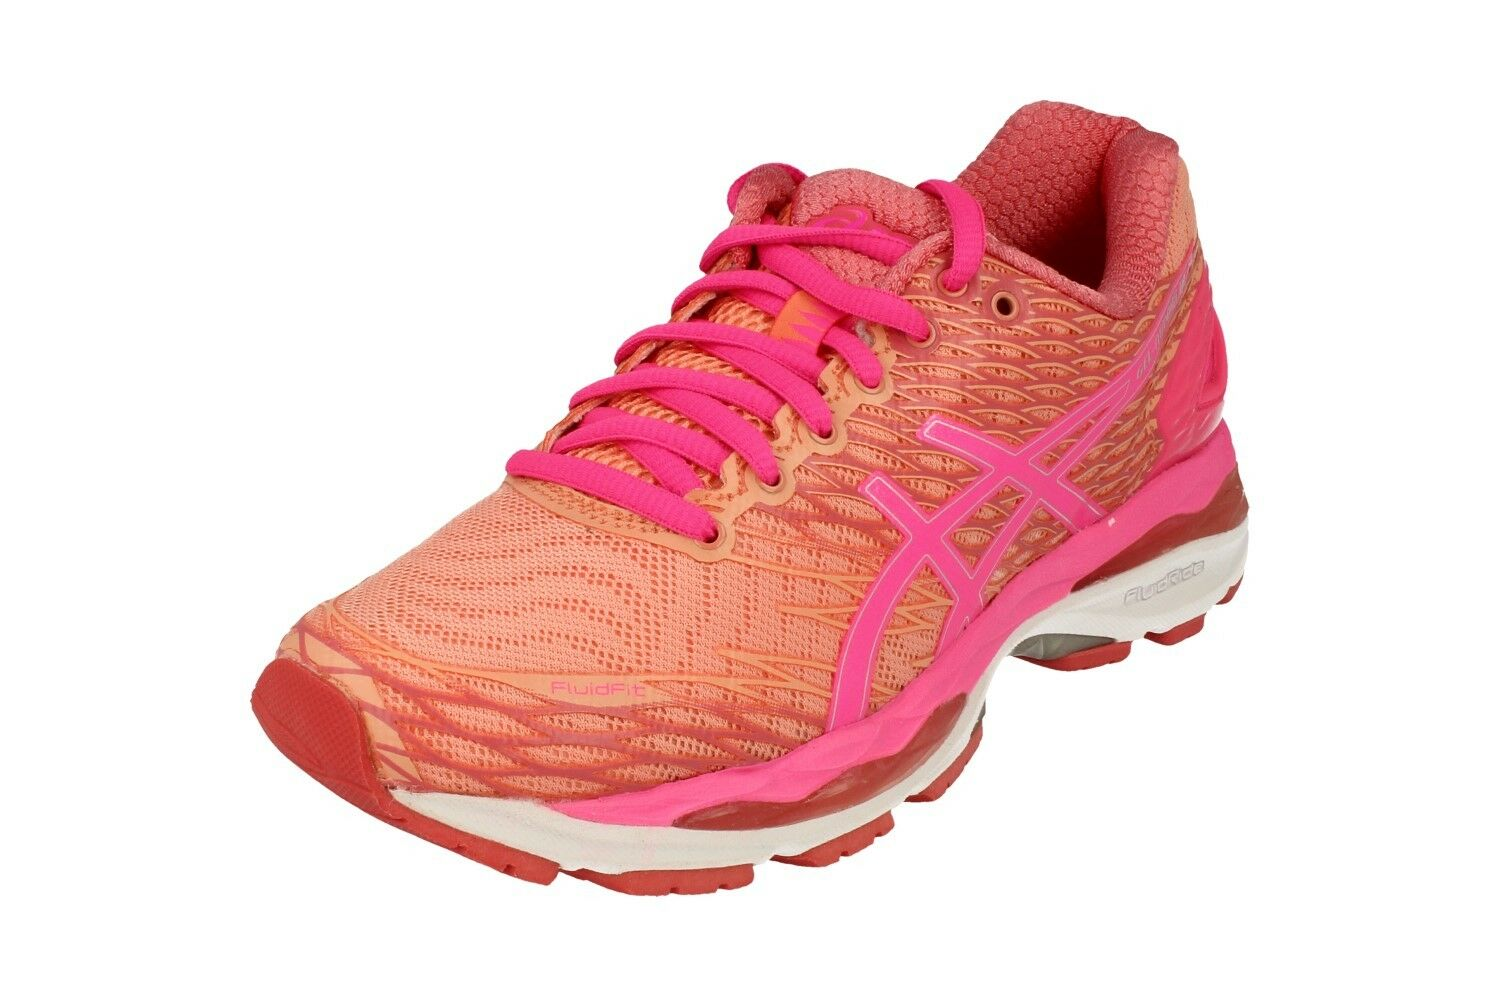 Asics Gel-Nimbus 18 Womens Running Trainers T650N Sneakers shoes 7620